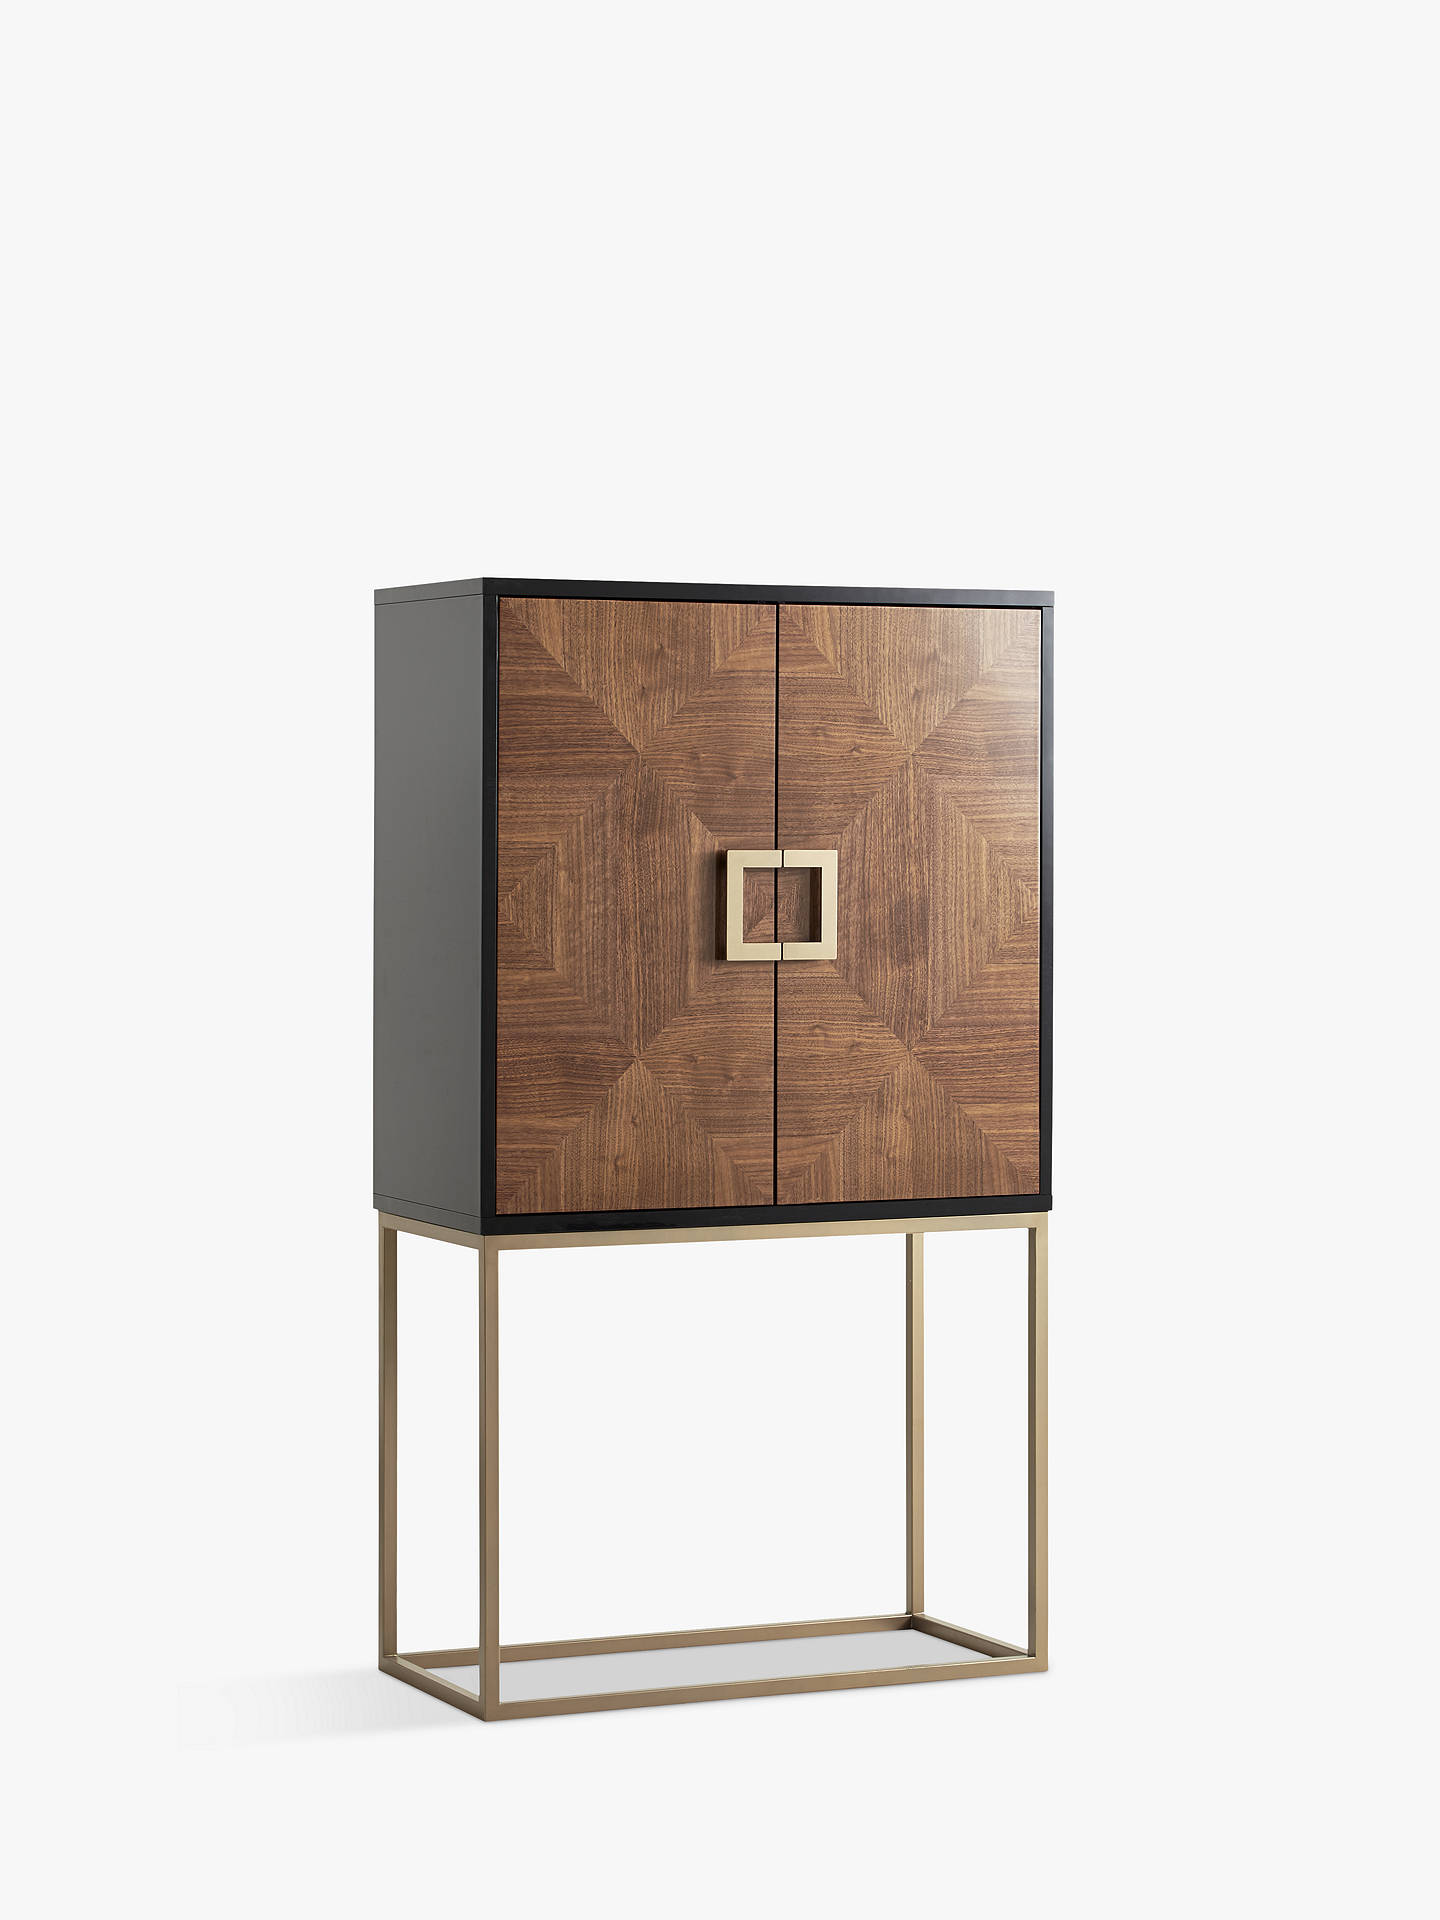 Charmant Buy John Lewis U0026 Partners Puccini Cocktail Cabinet Online At Johnlewis. ...